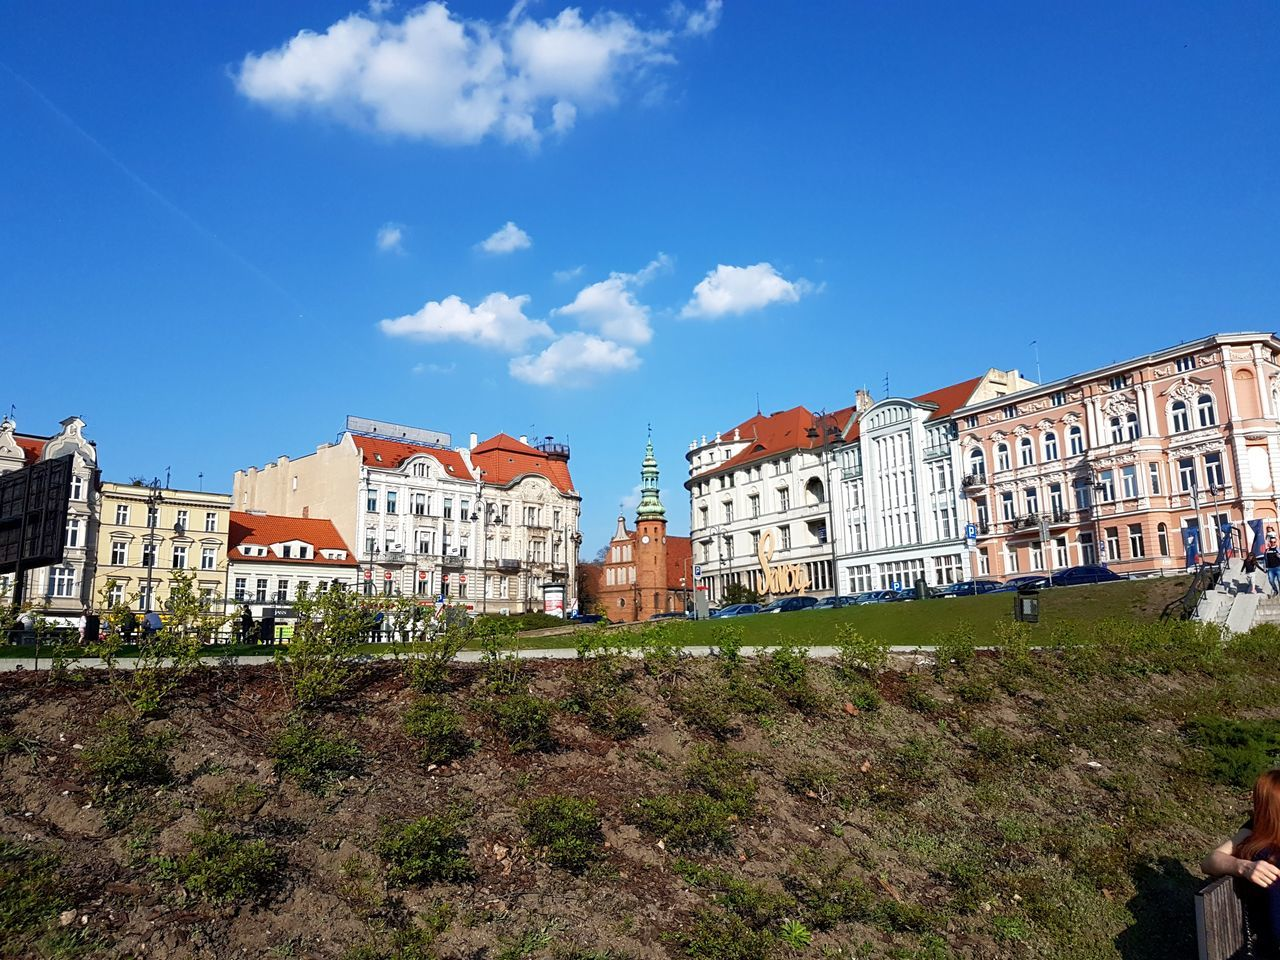 Day Travel Architecture Built Structure Low Angle View Building Exterior Sky Outdoors City Poland Cultures Travel Destinations Bydgoszcz Blue Cloud - Sky City Architecture Landscape No People History Urban Skyline